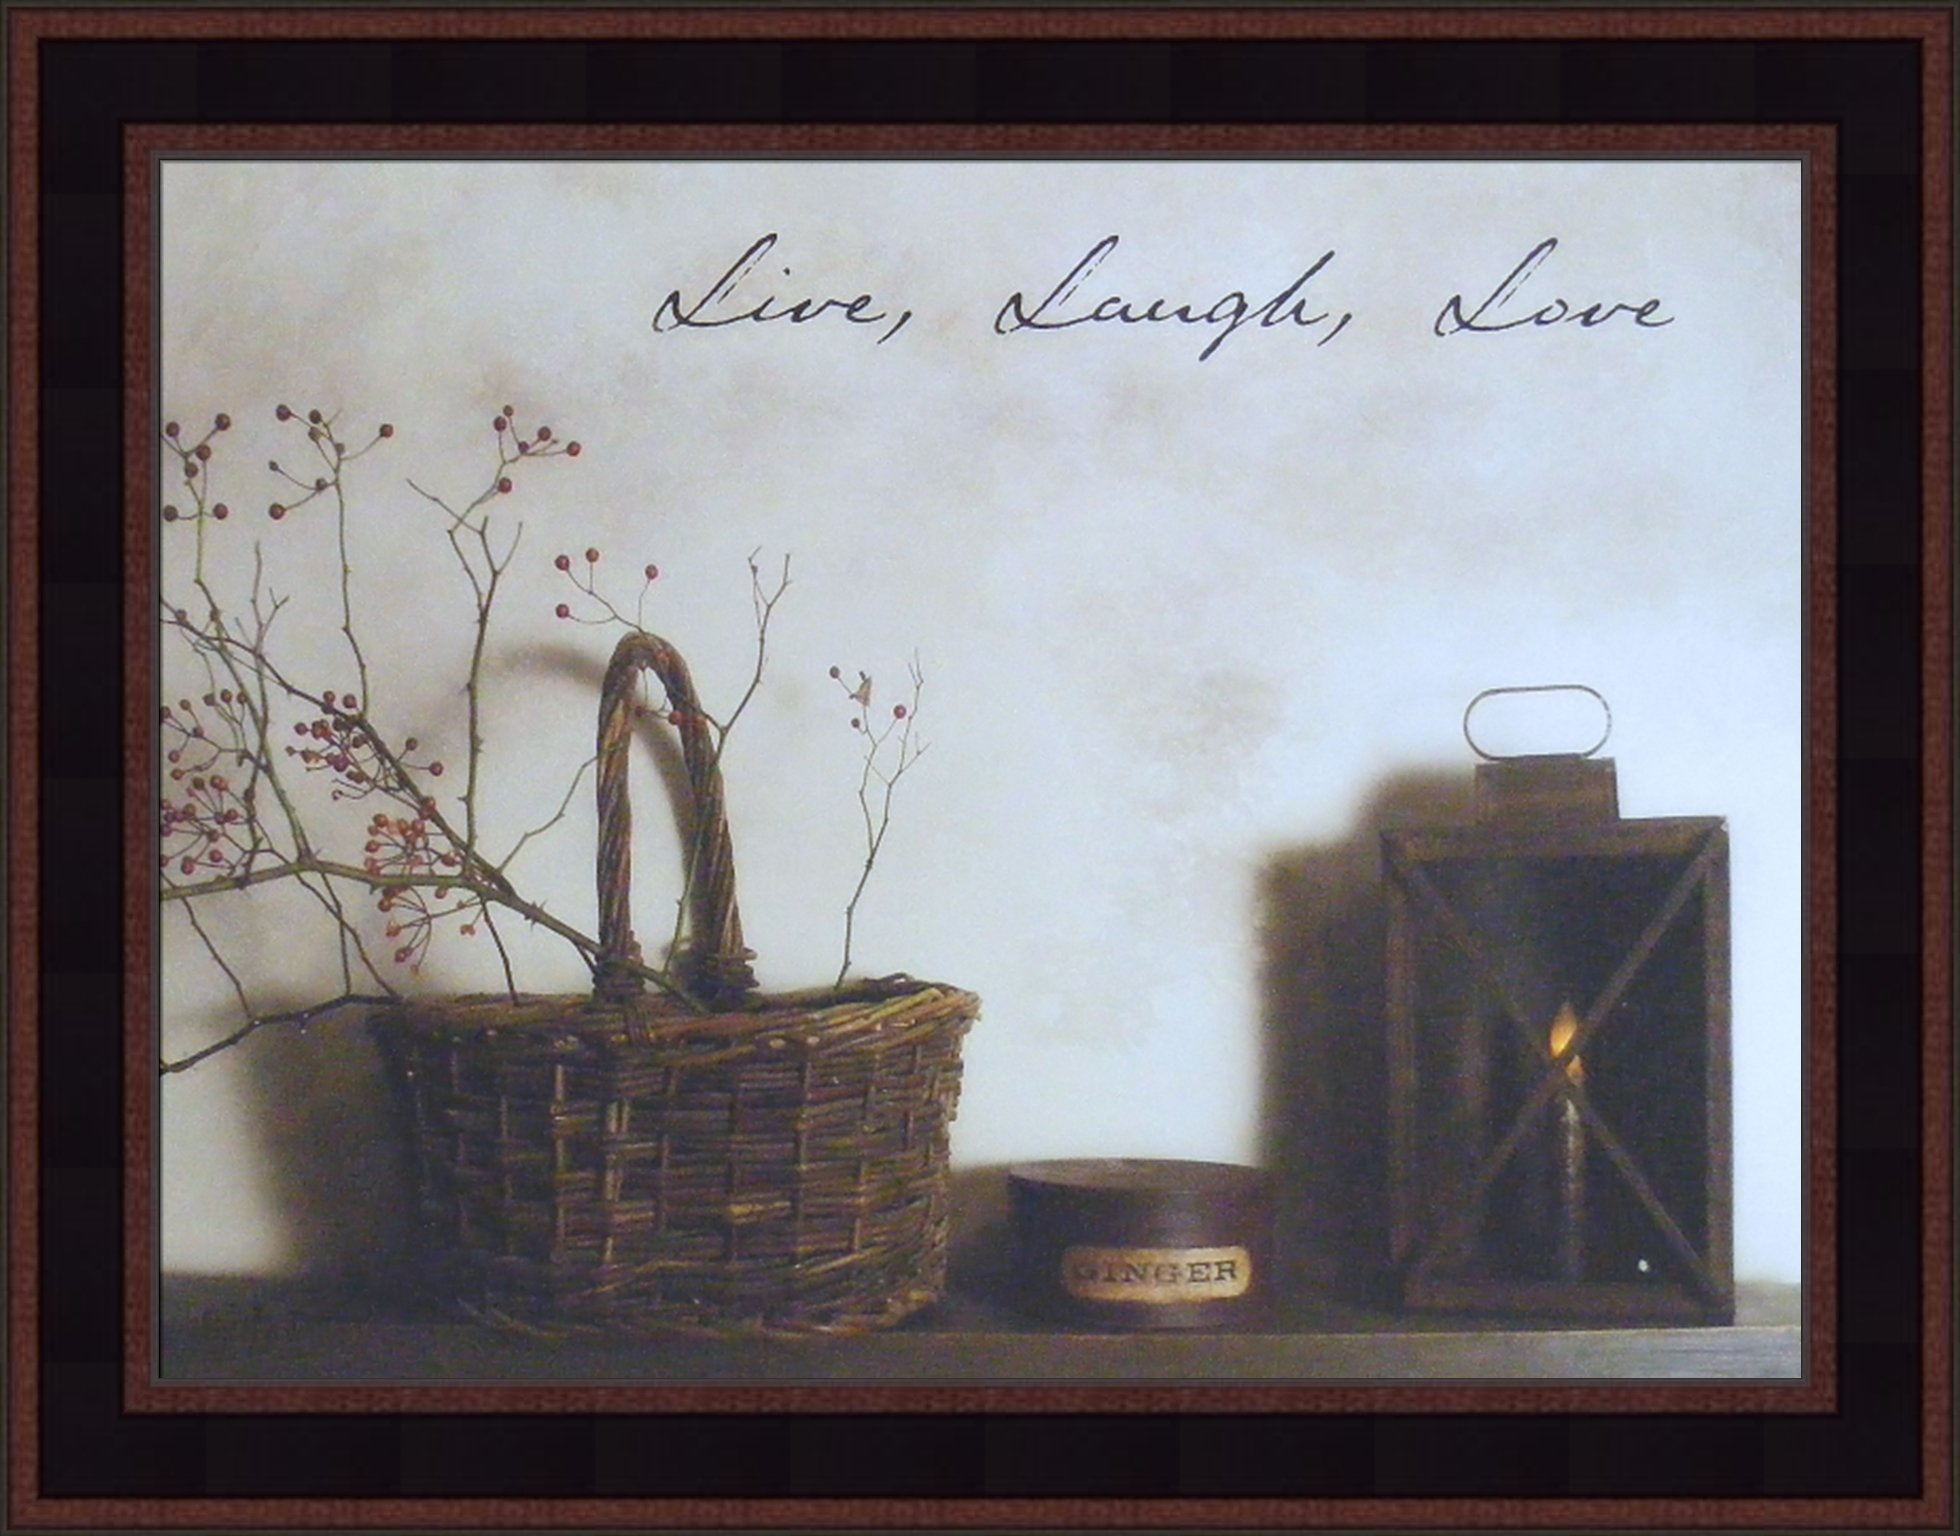 Live Laugh Love by Billy Jacobs 15x19 Country Rustic Basket Candle Primitive Photography Folk Art Wall Décor Framed Picture